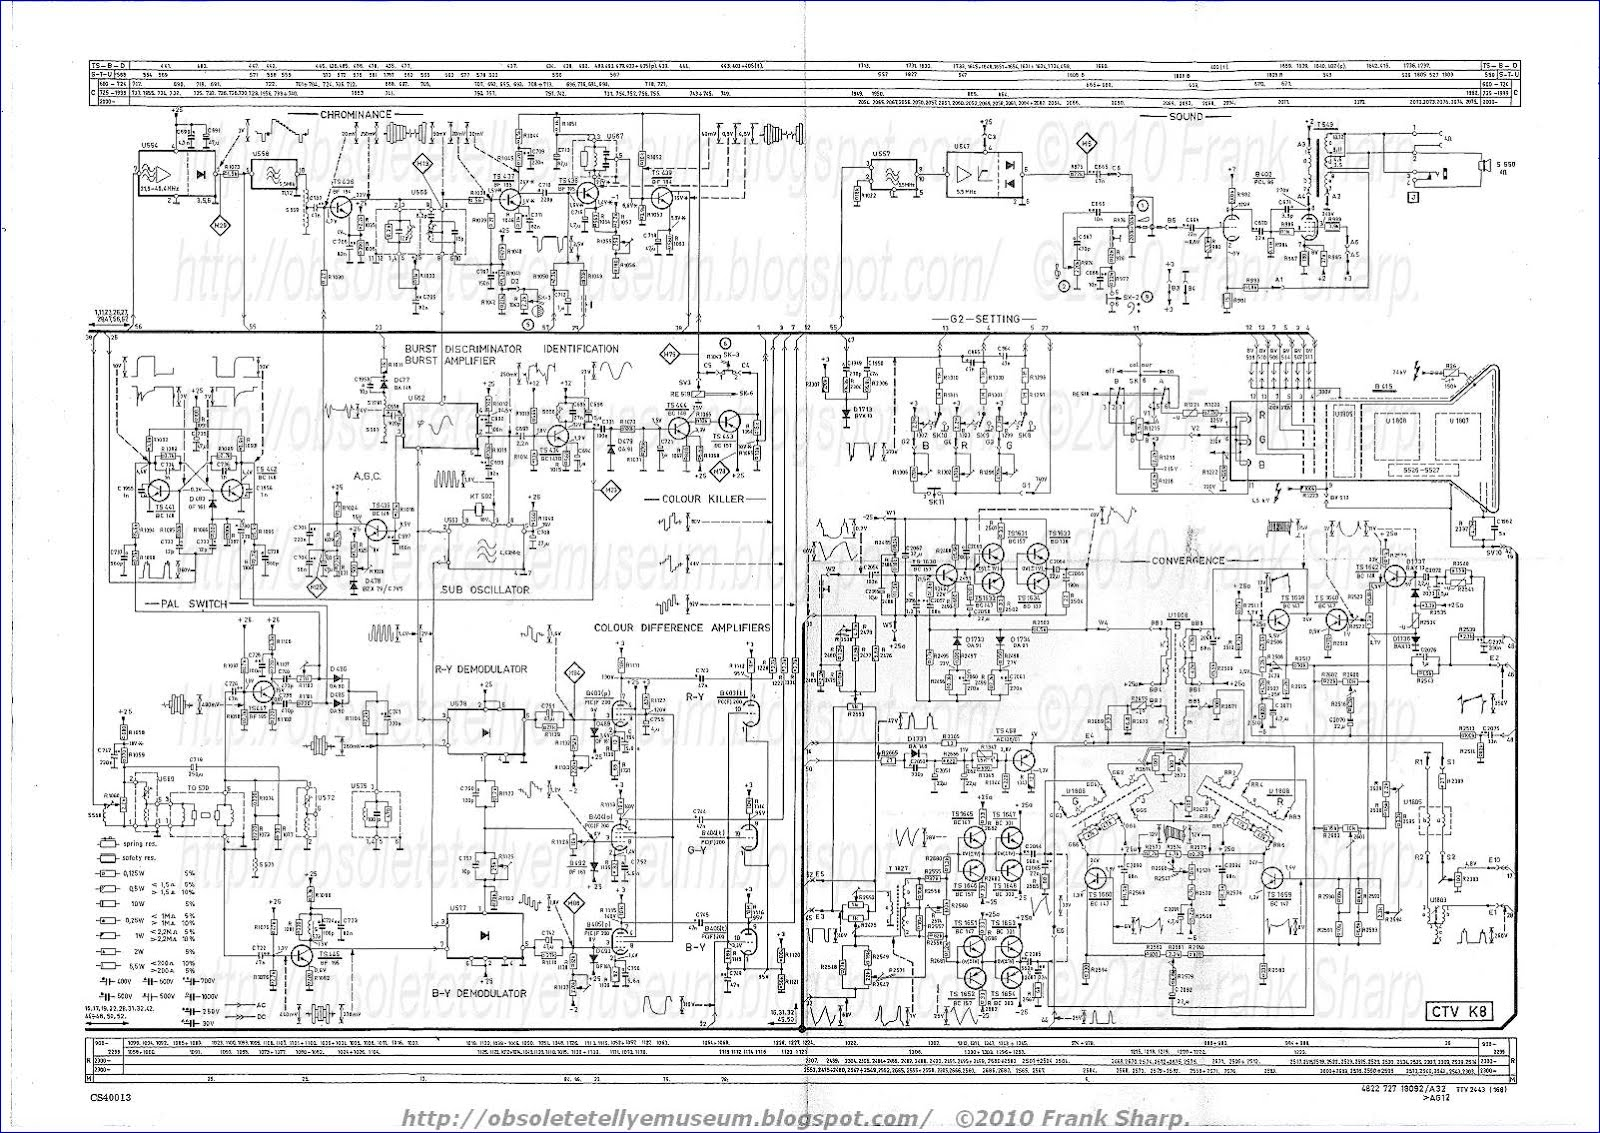 Obsolete Technology Tellye Philips X26k171 Royal Color 110 Giotto 302 188 Wiring Diagram An R Y B Urst Component Also Appears In The Signal Input To Terminal 45 Of Demodulator 40 And Is Subject Phase Synchronous Detection When